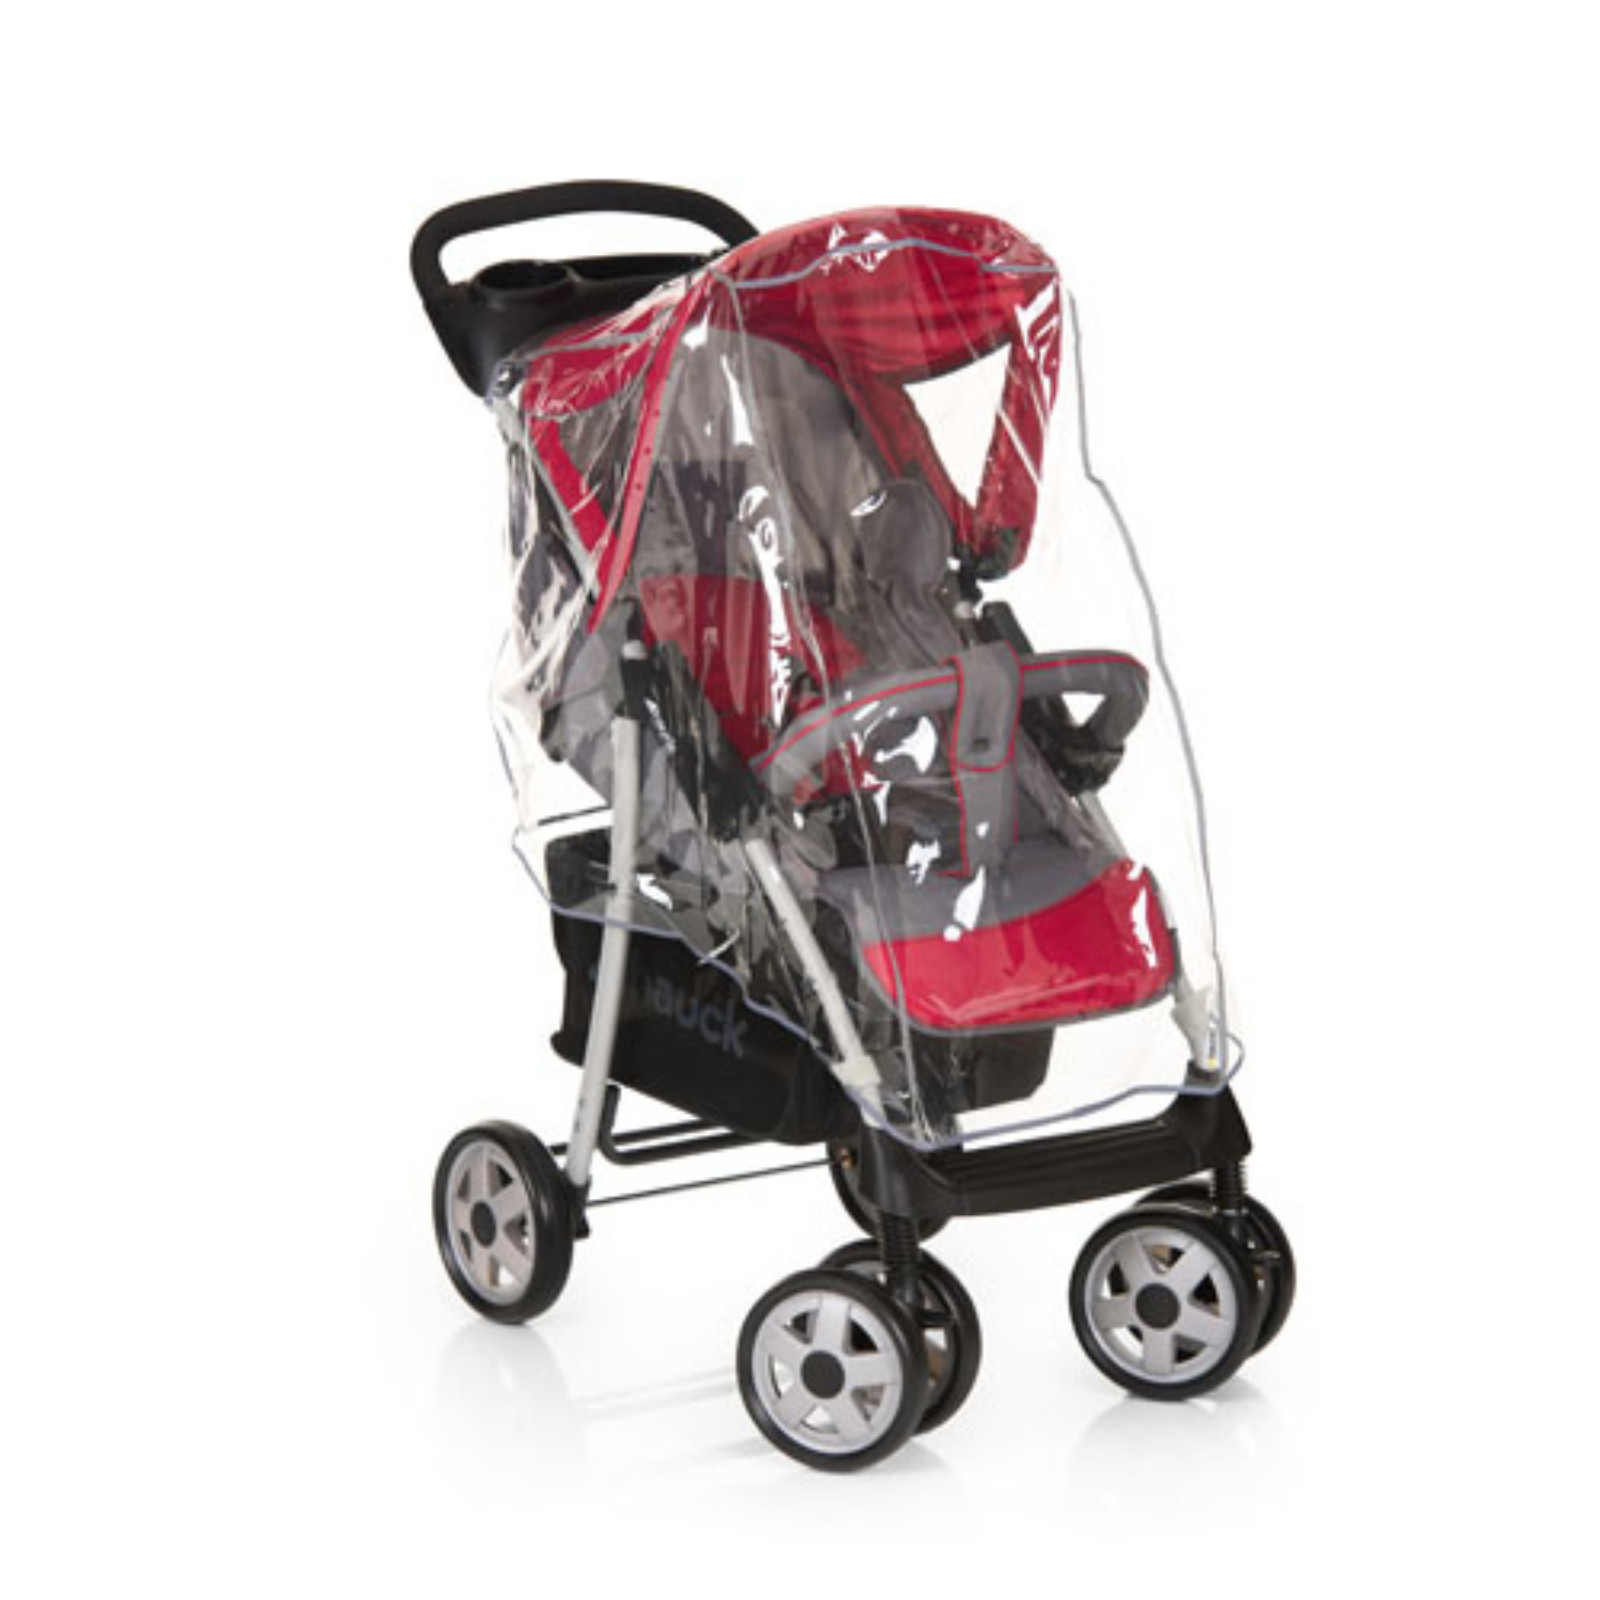 Hauck Shopper Raincover Hauck Stroller Raincover Buy At Online4baby